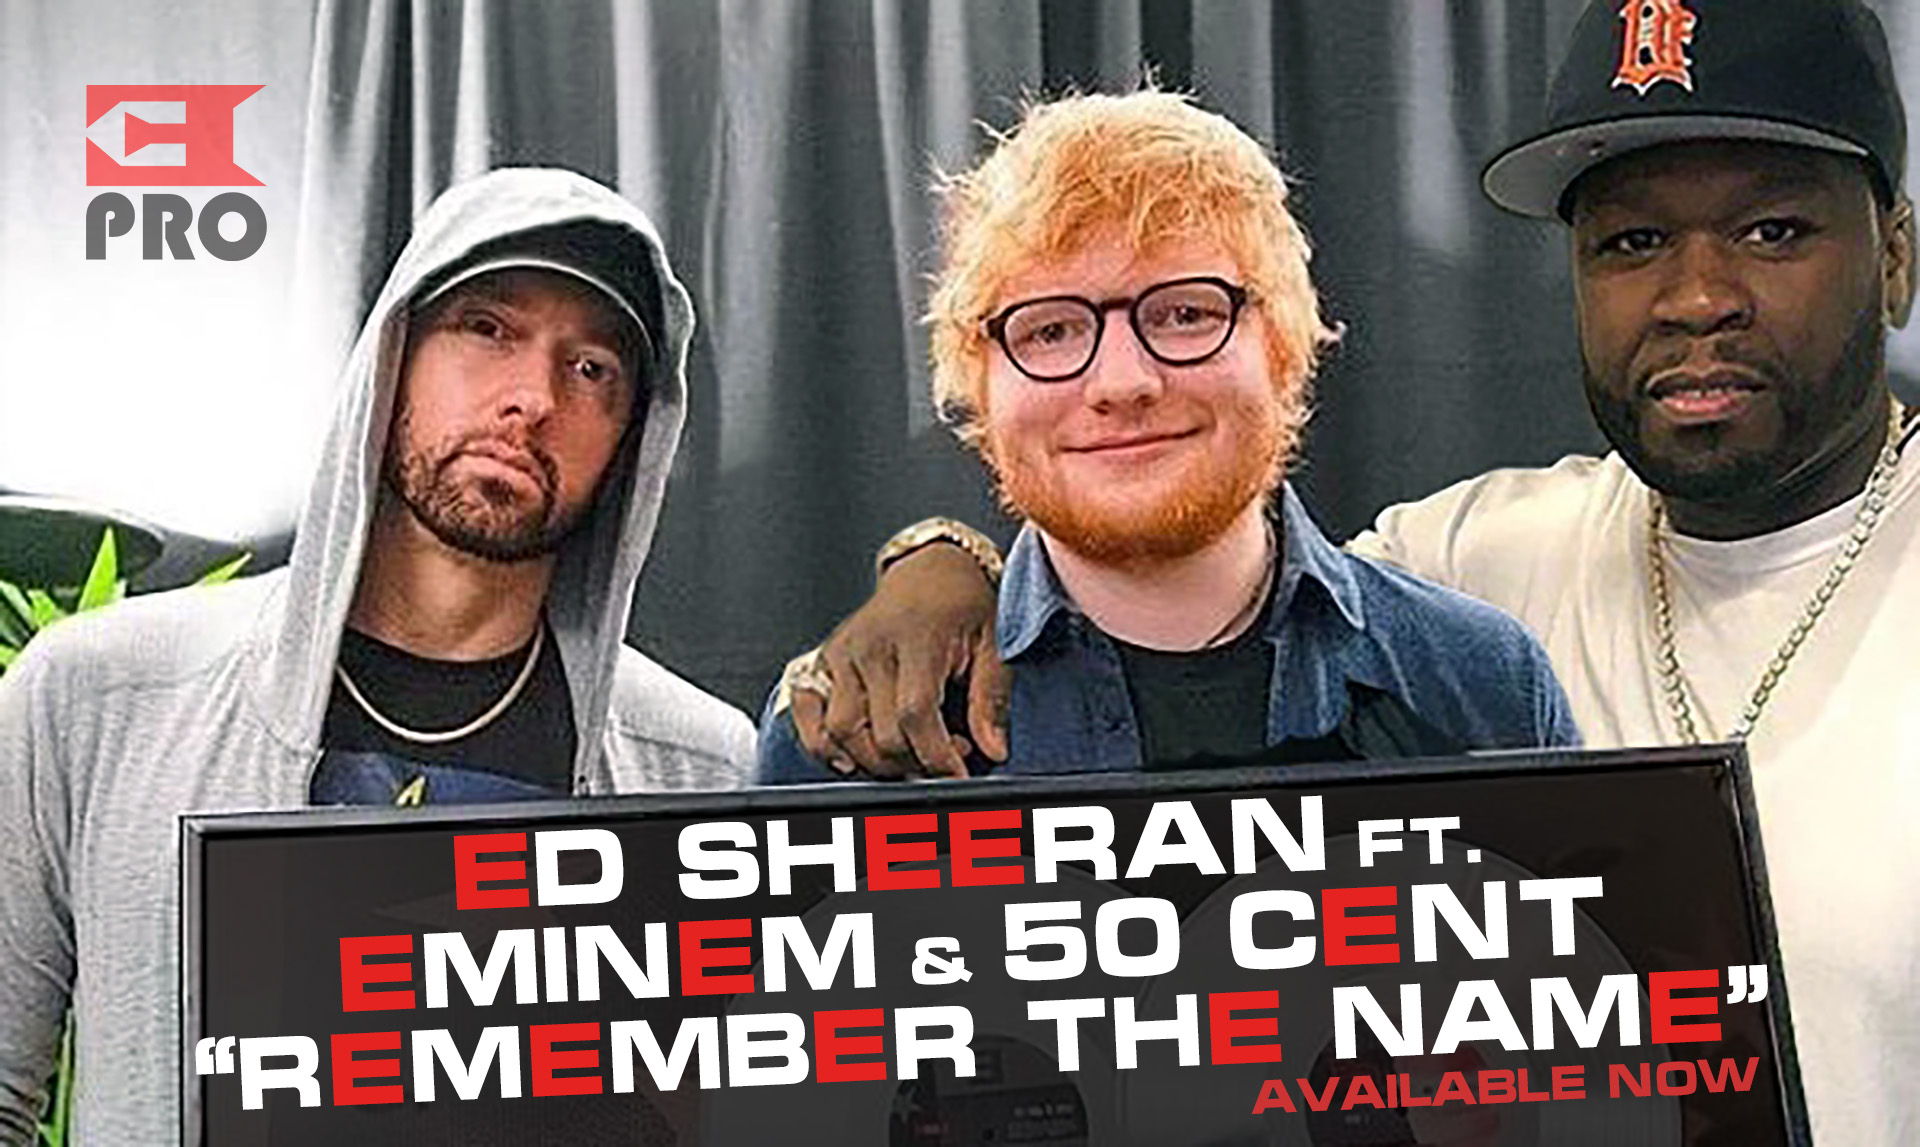 Ed Sheeran - Remember The Name feat. Eminem & 50 Cent